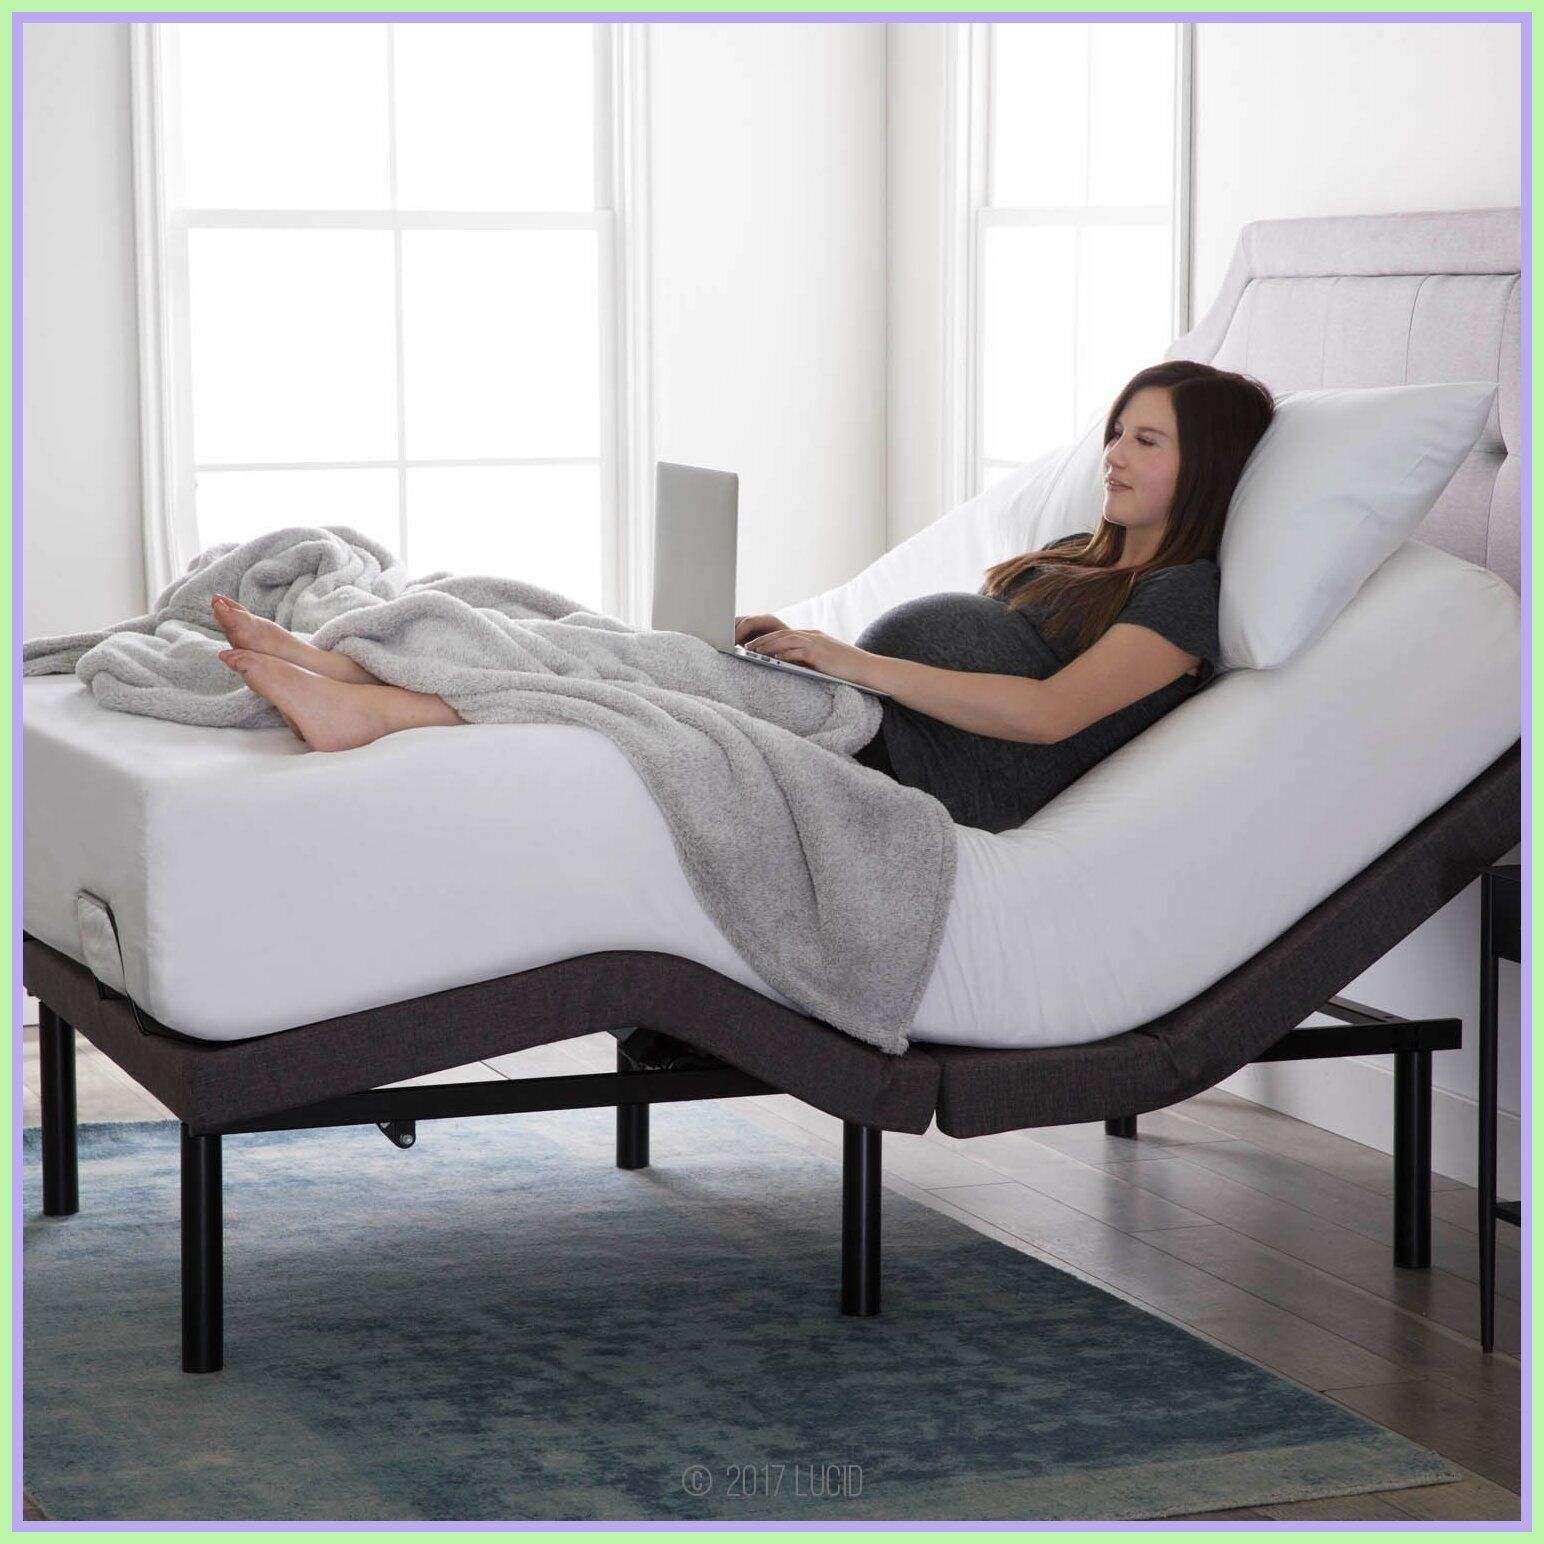 96 Reference Of Mattress Firm Adjustable Bed 300 Adjustable Bed Base Adjustable Bed Frame Adjustable Beds